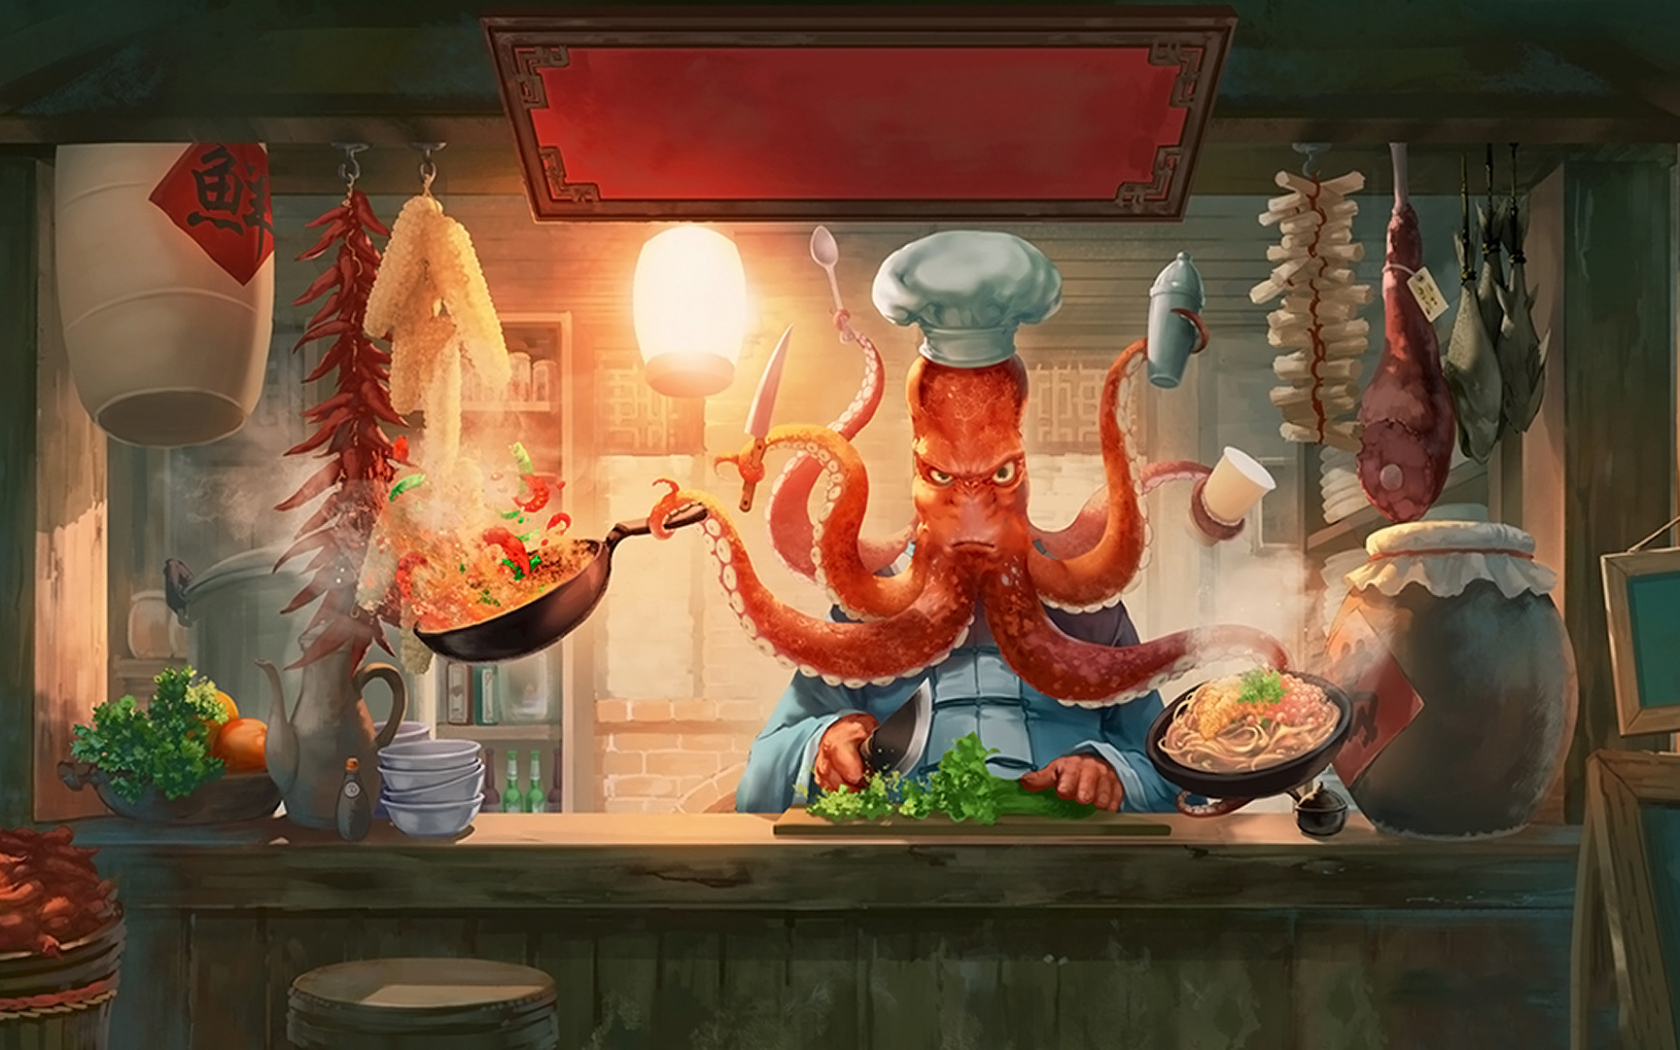 Desktop Wallpaper Humor Octopus Chef Hd Image Picture Background 026a92